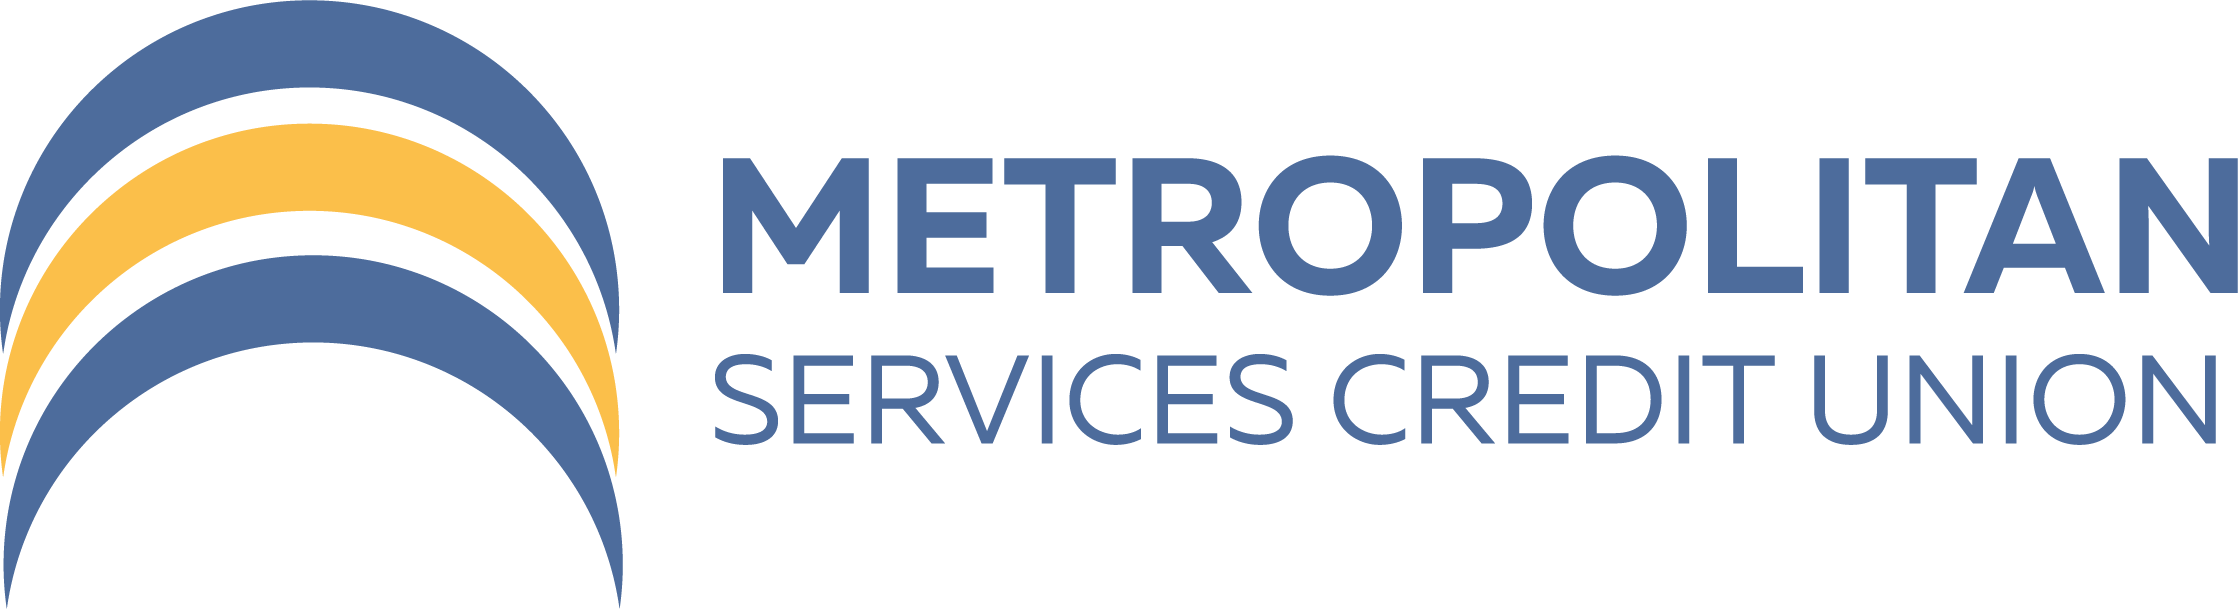 Metropolitan Services Credit Union